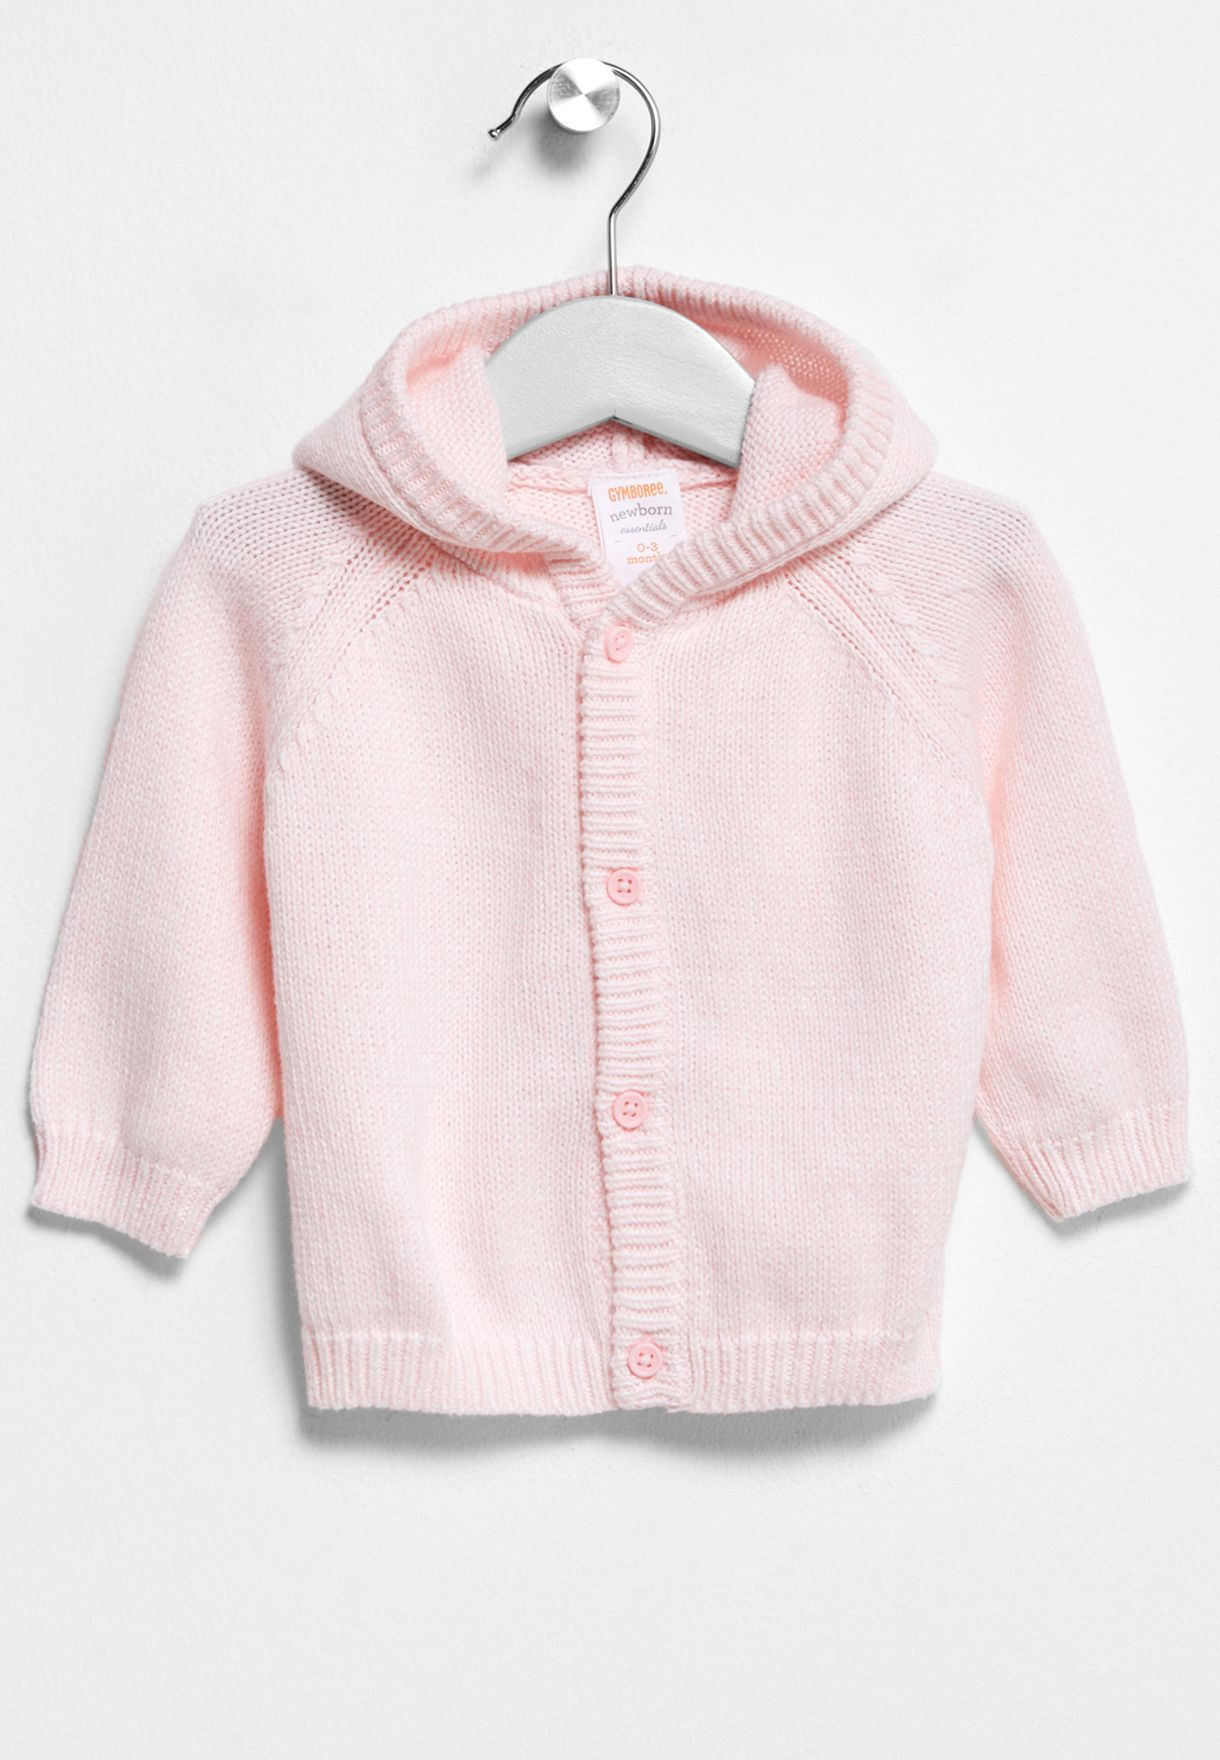 d133f1d21 Shop Gymboree pink Infant Button Up Sweater 140172388 for Kids in ...